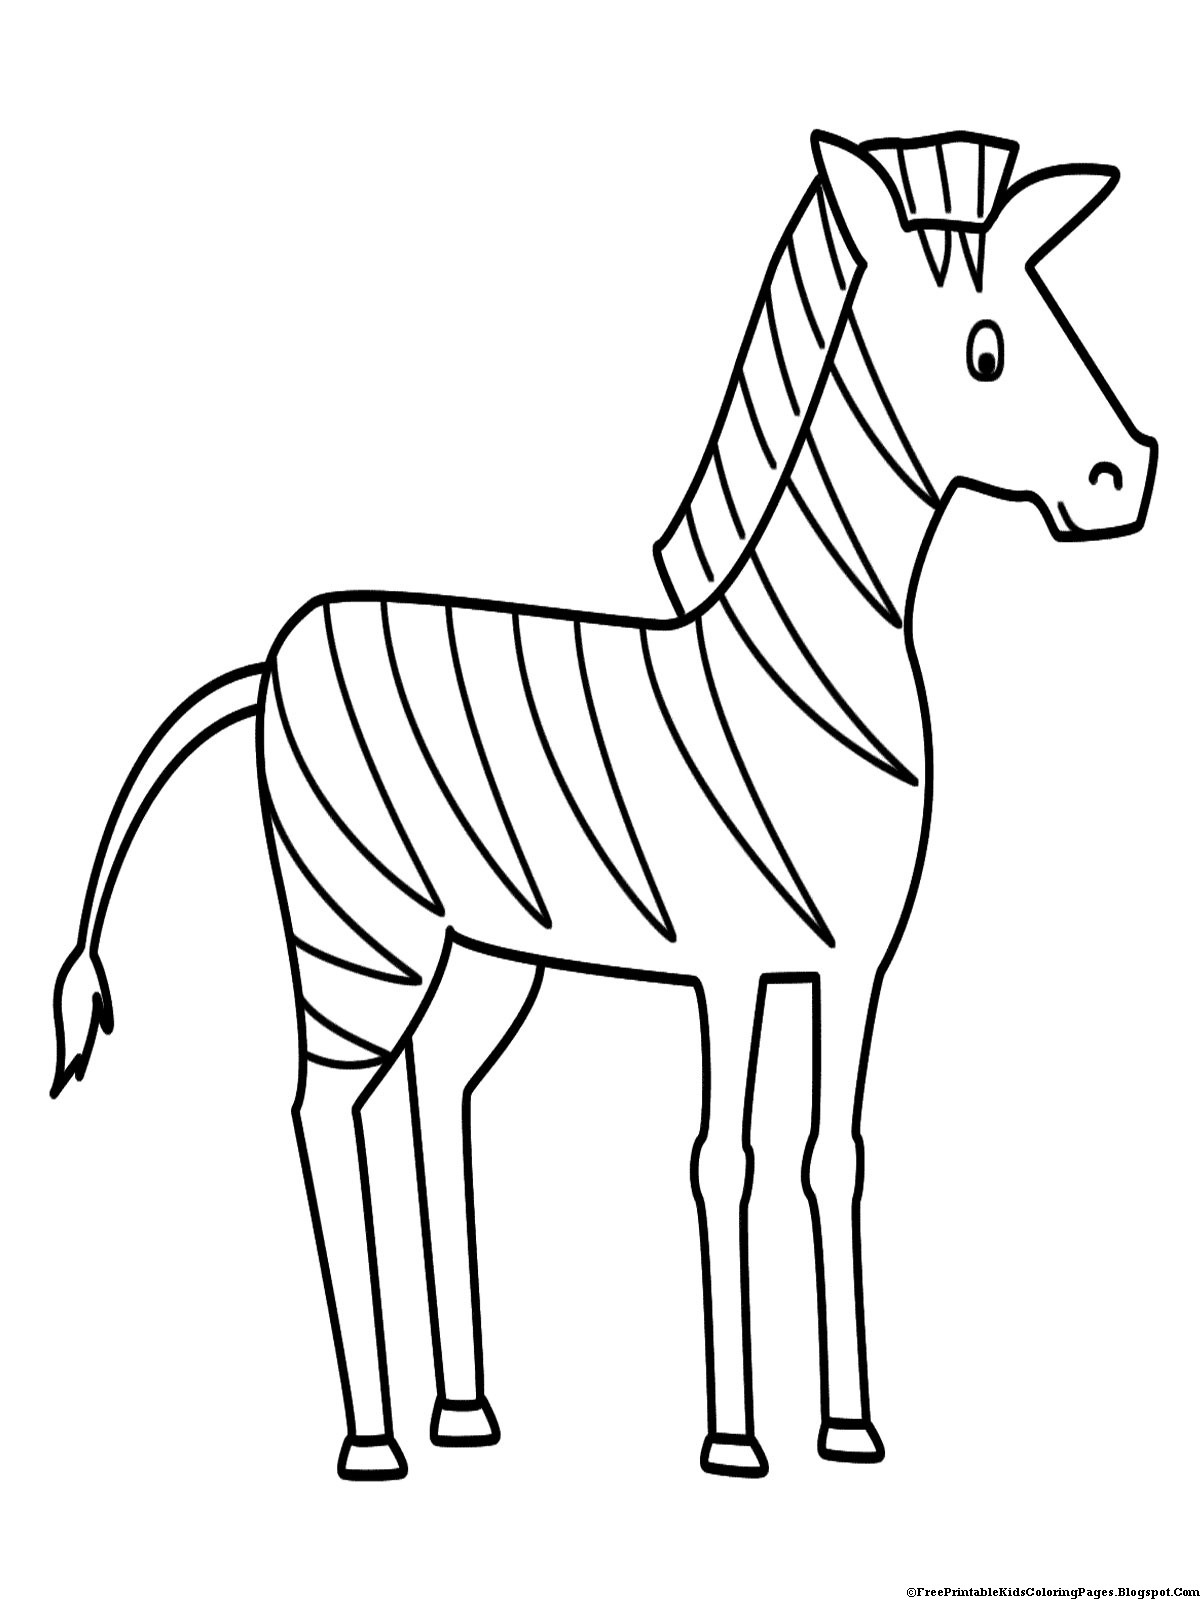 free zebra coloring pages to print zebra without stripes coloring pages printable sketch free zebra pages print coloring to